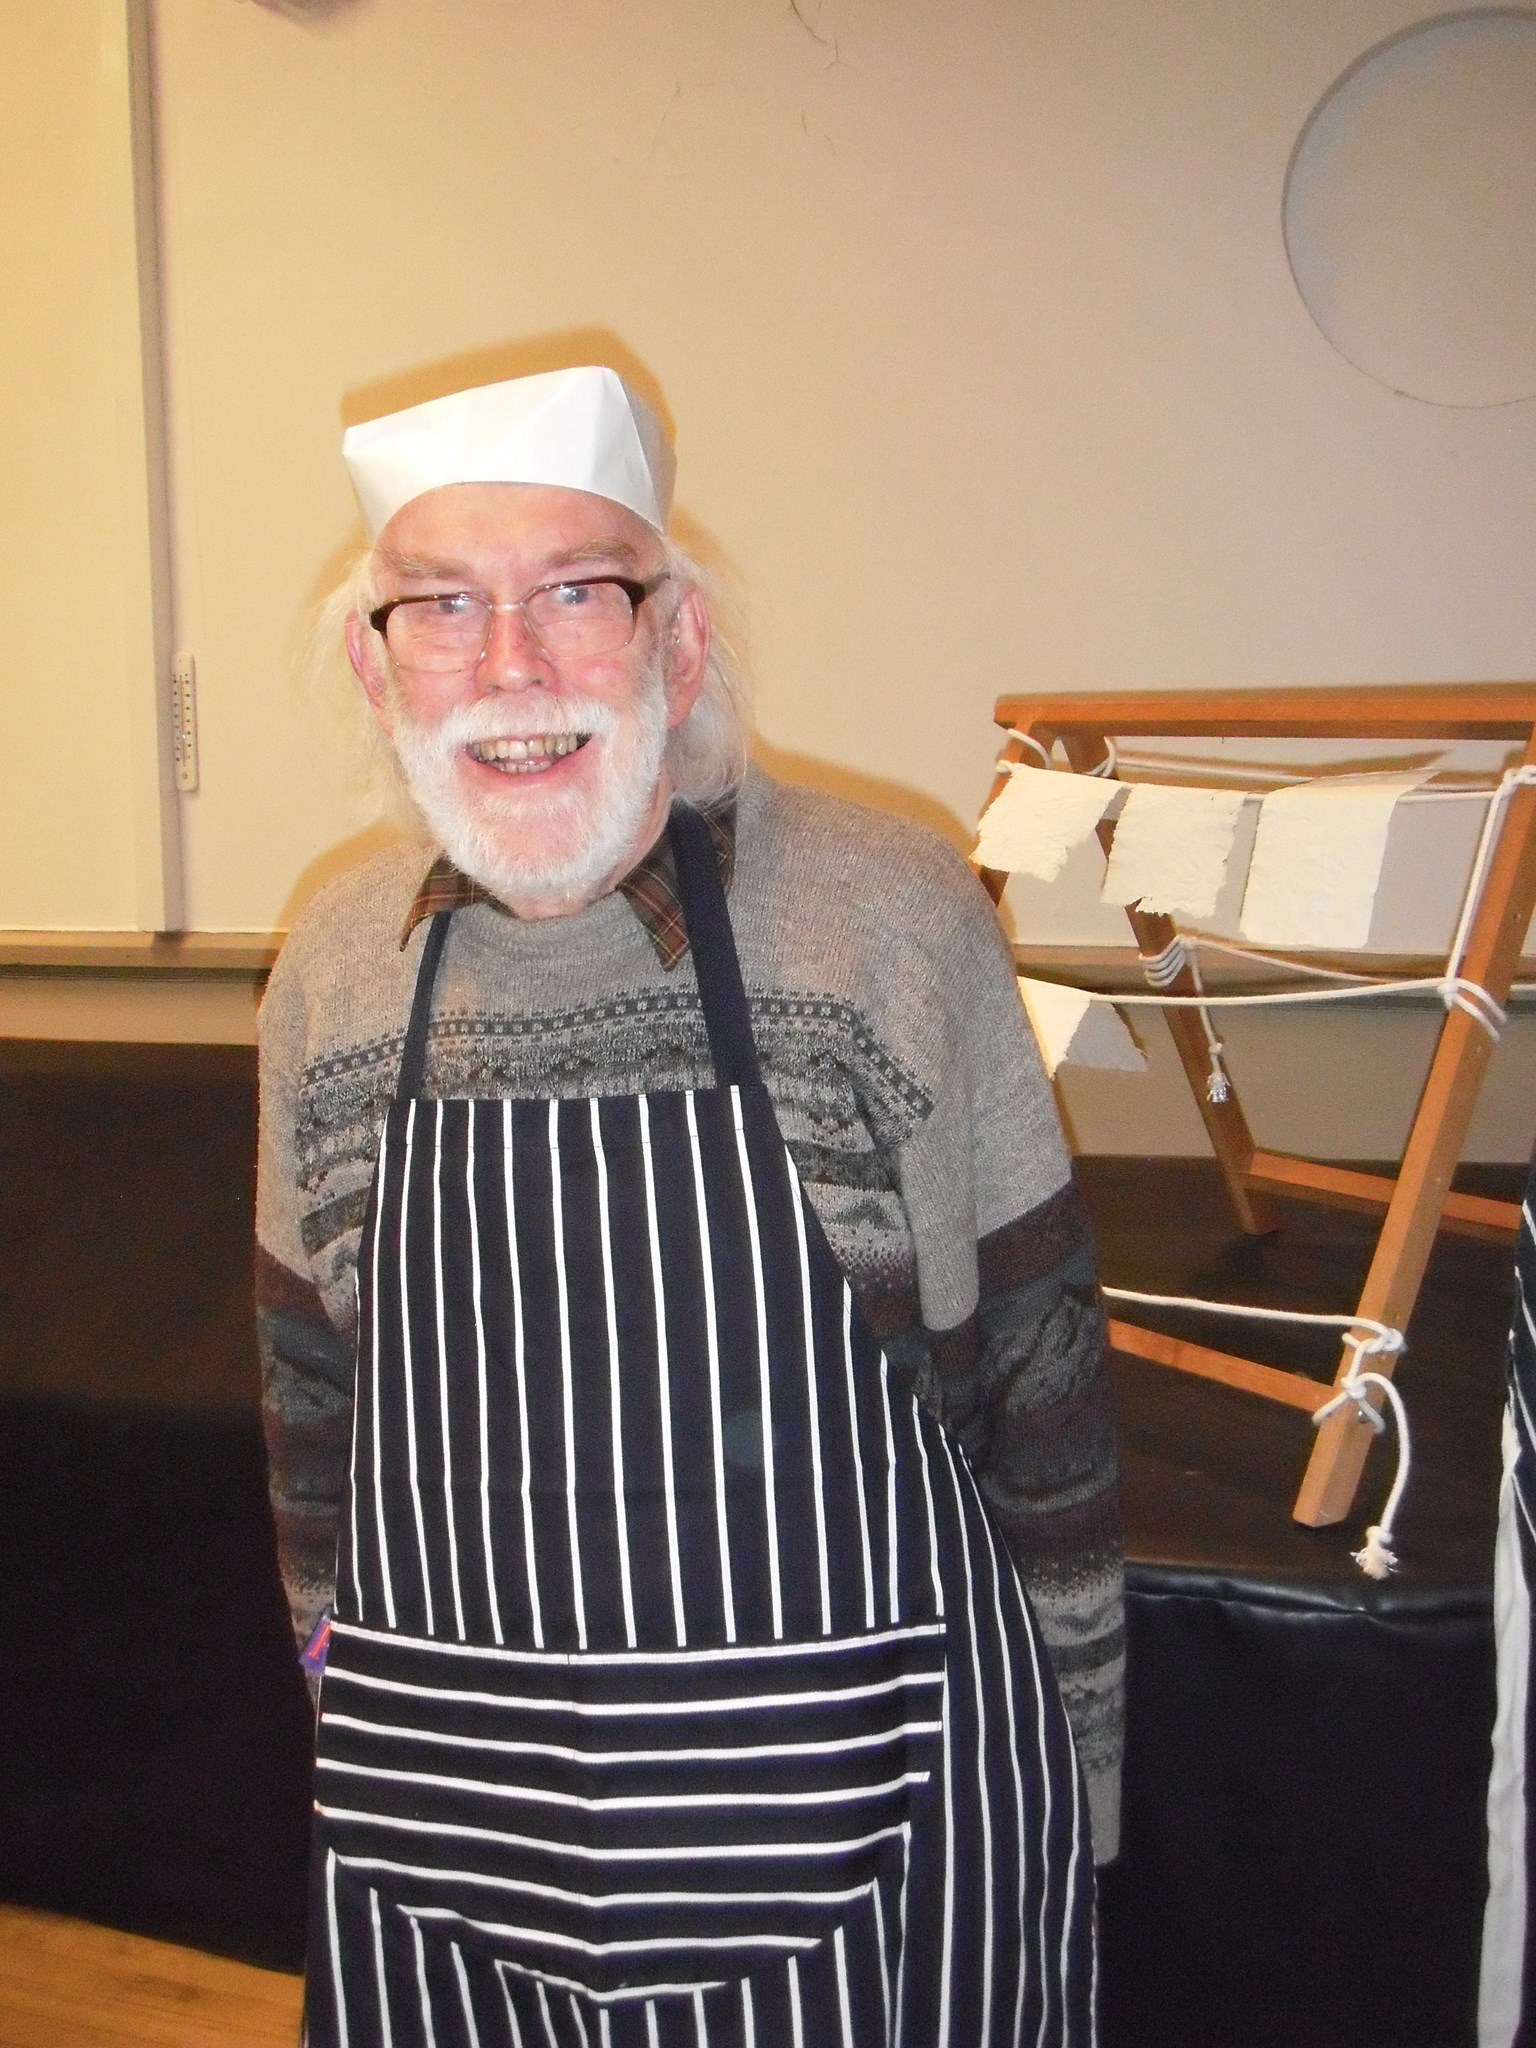 Alan wearing his paper hat while demonstrating paper making, 2015